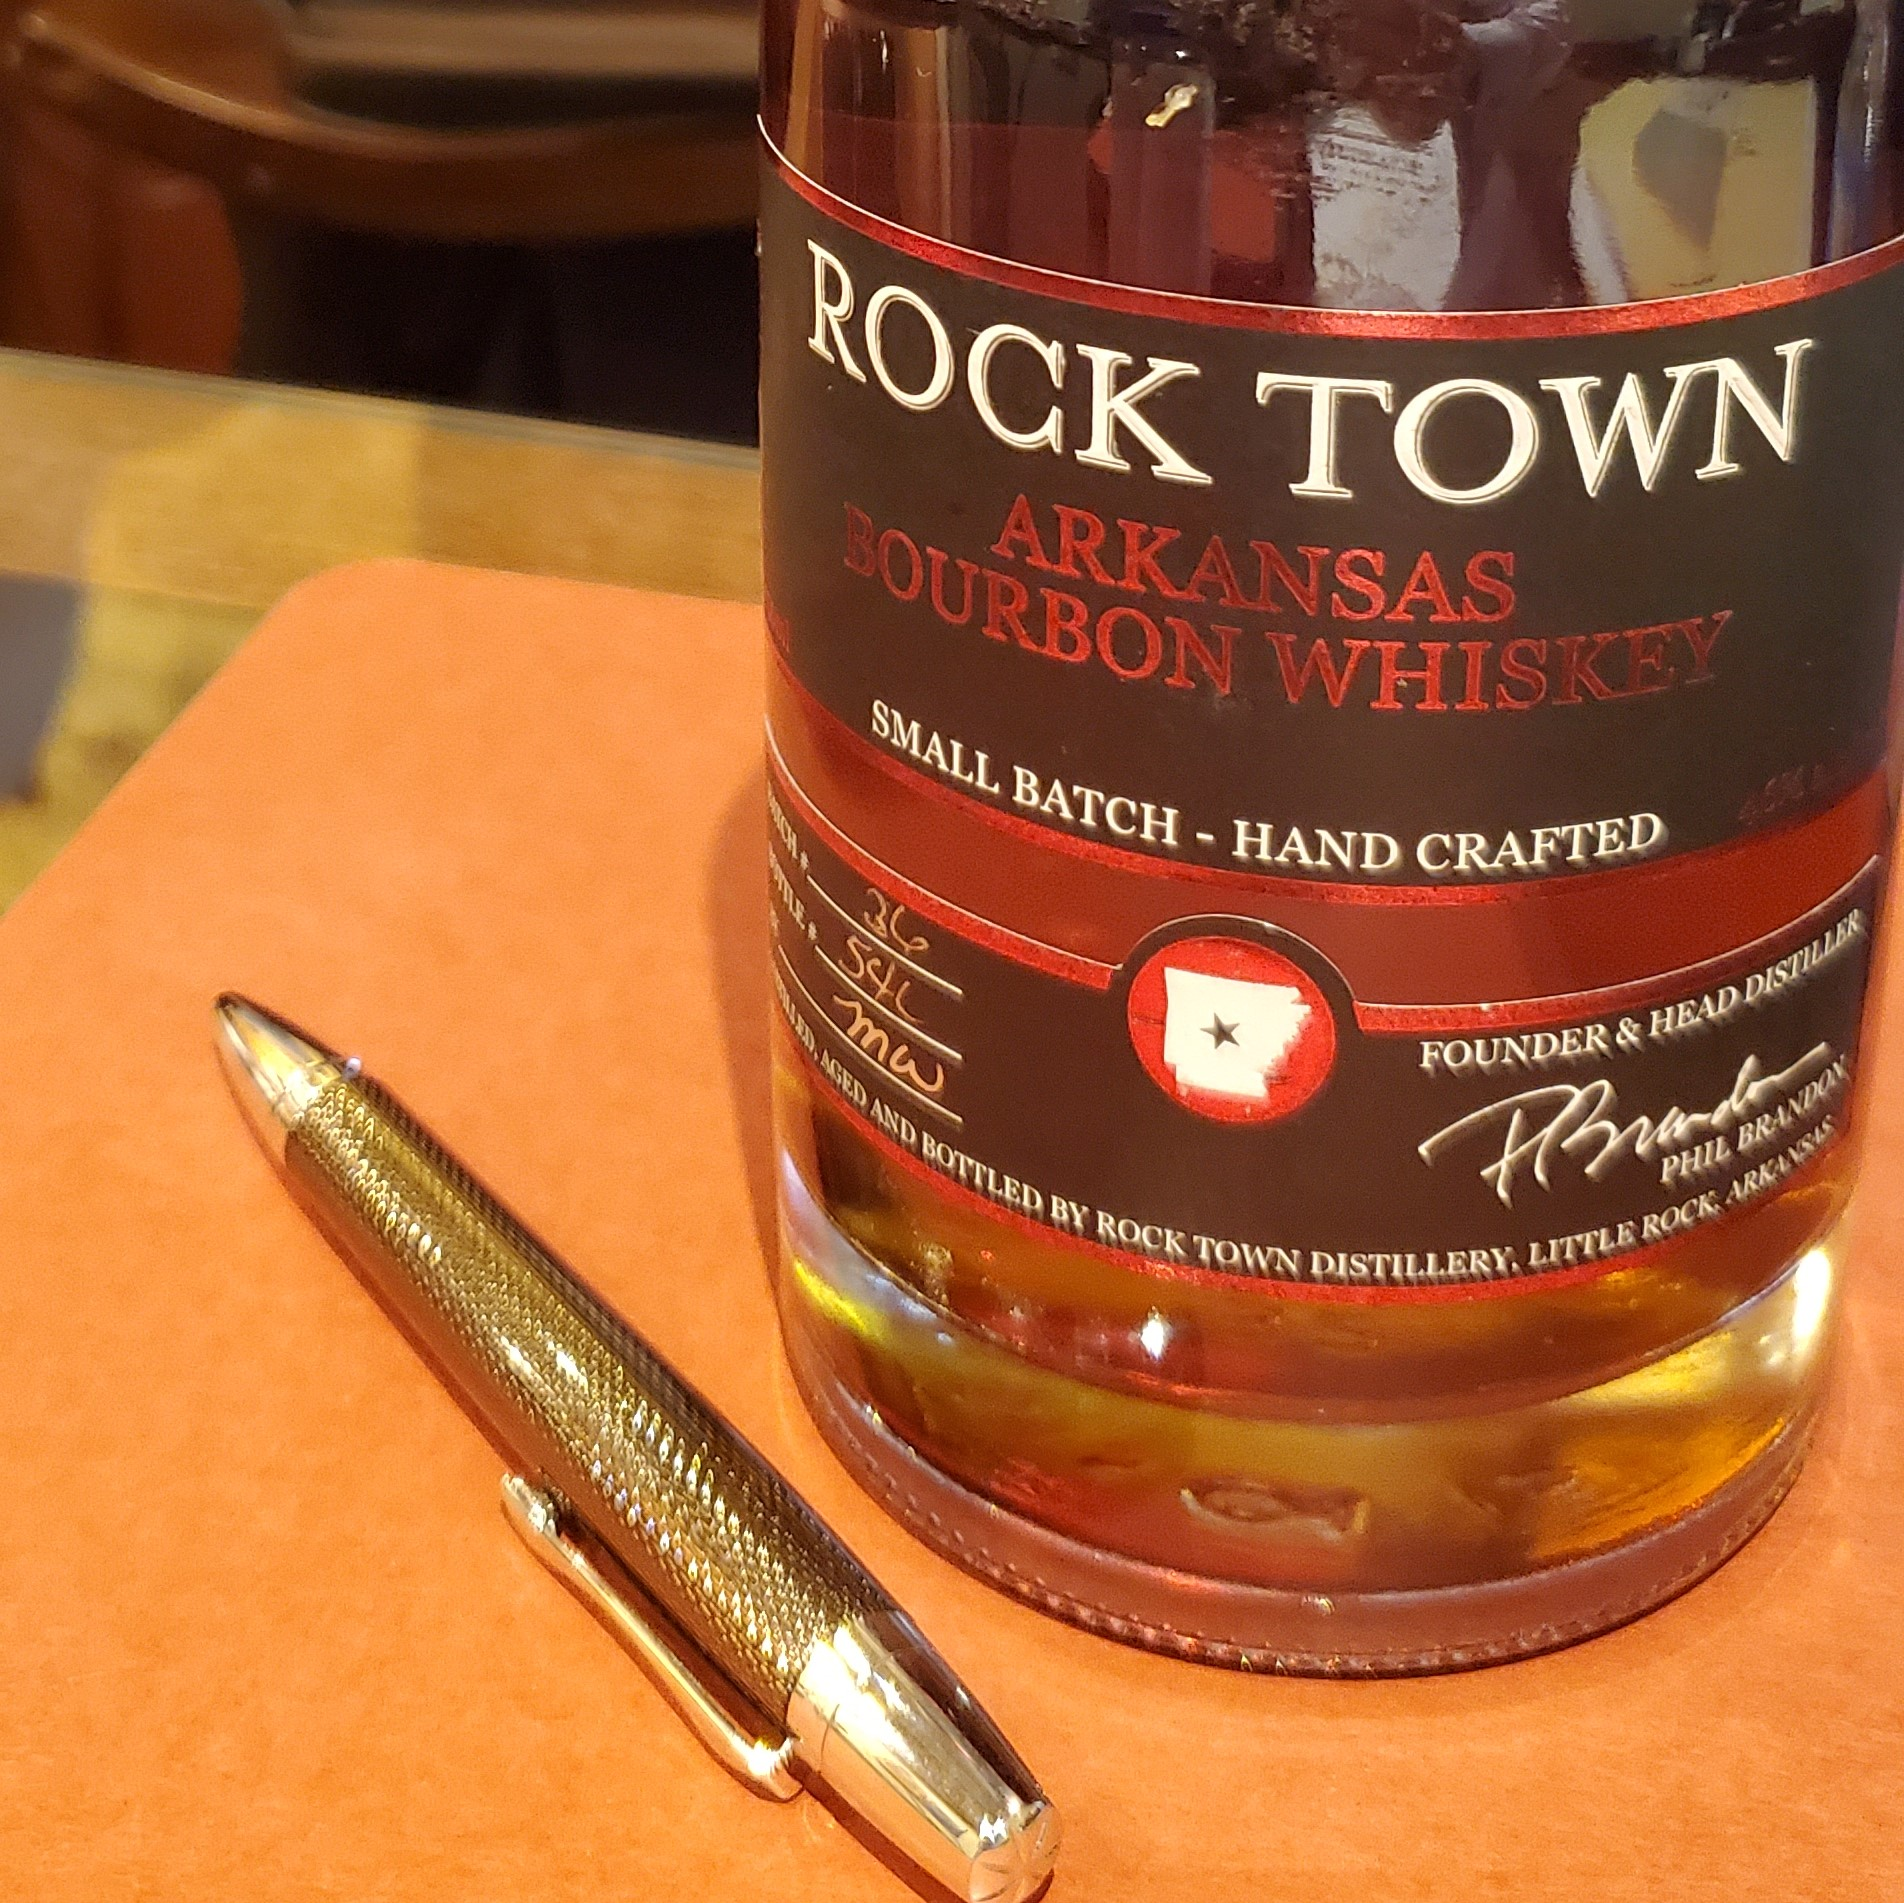 #68 - Rock town Arkansas Whiskey show art